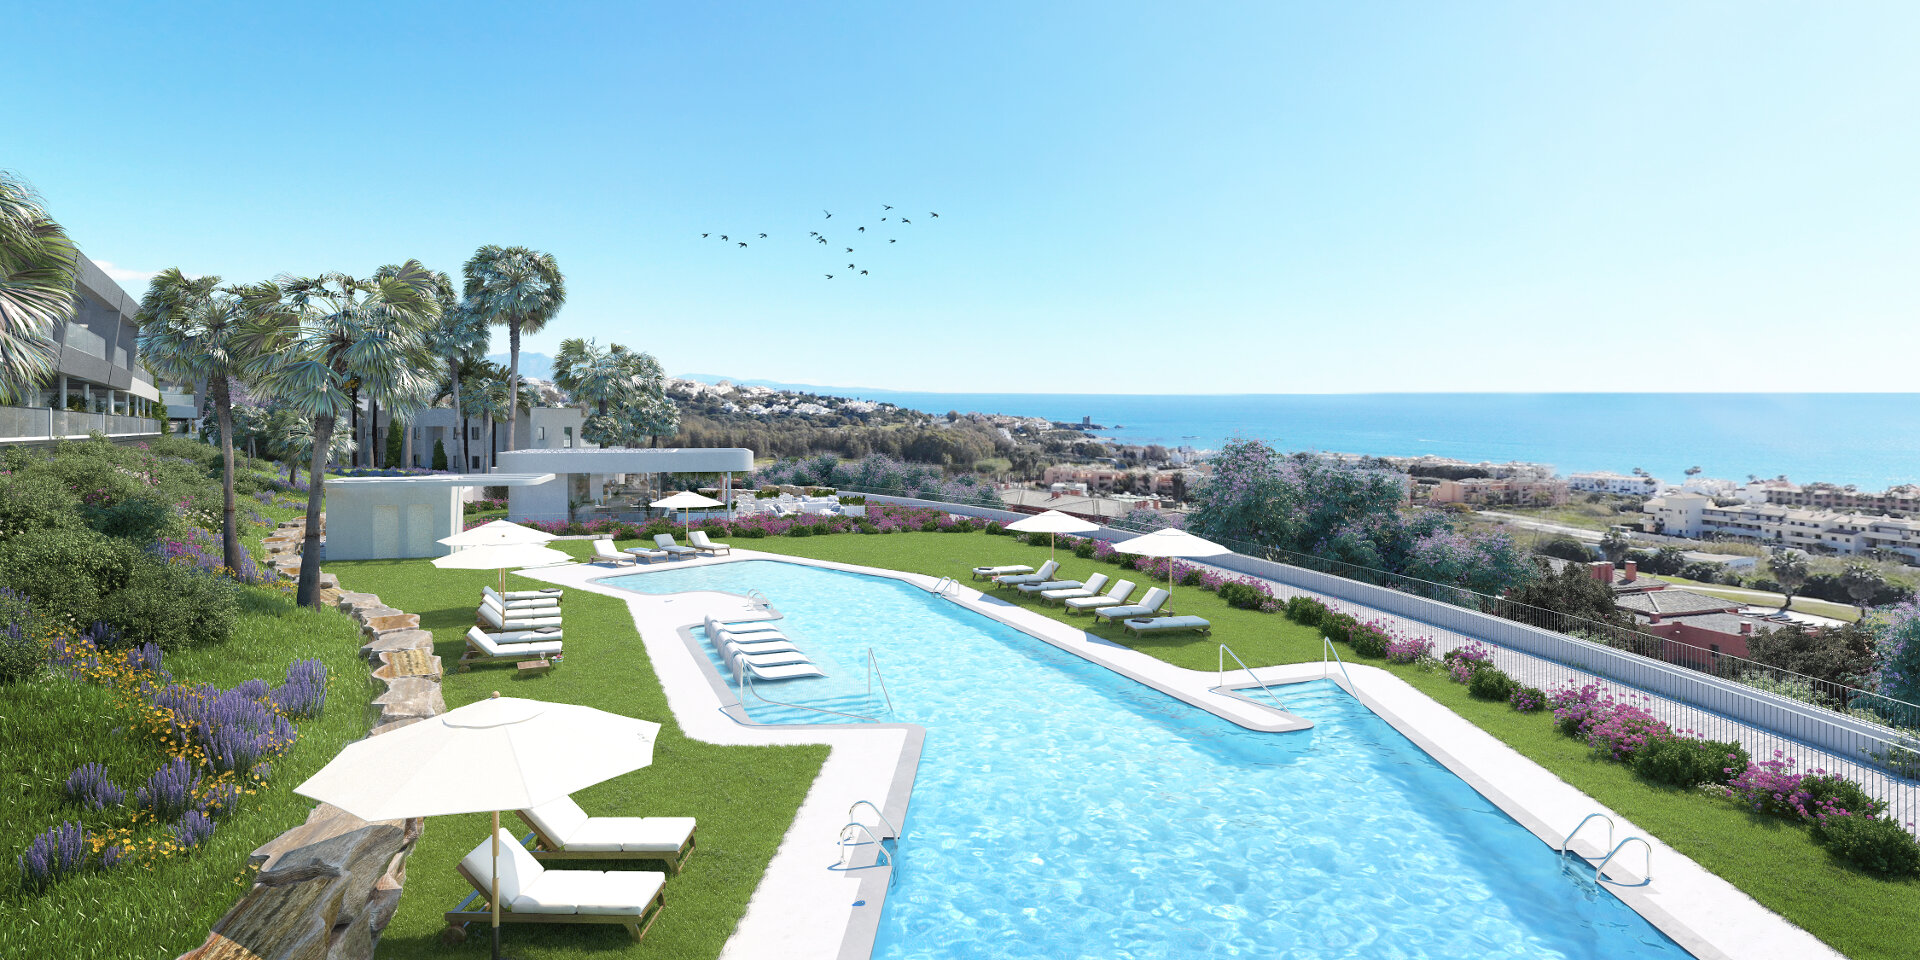 New 2 bedroom apartment 400 meters from the beach with beautiful views over the sea and the Doña Julia golf course